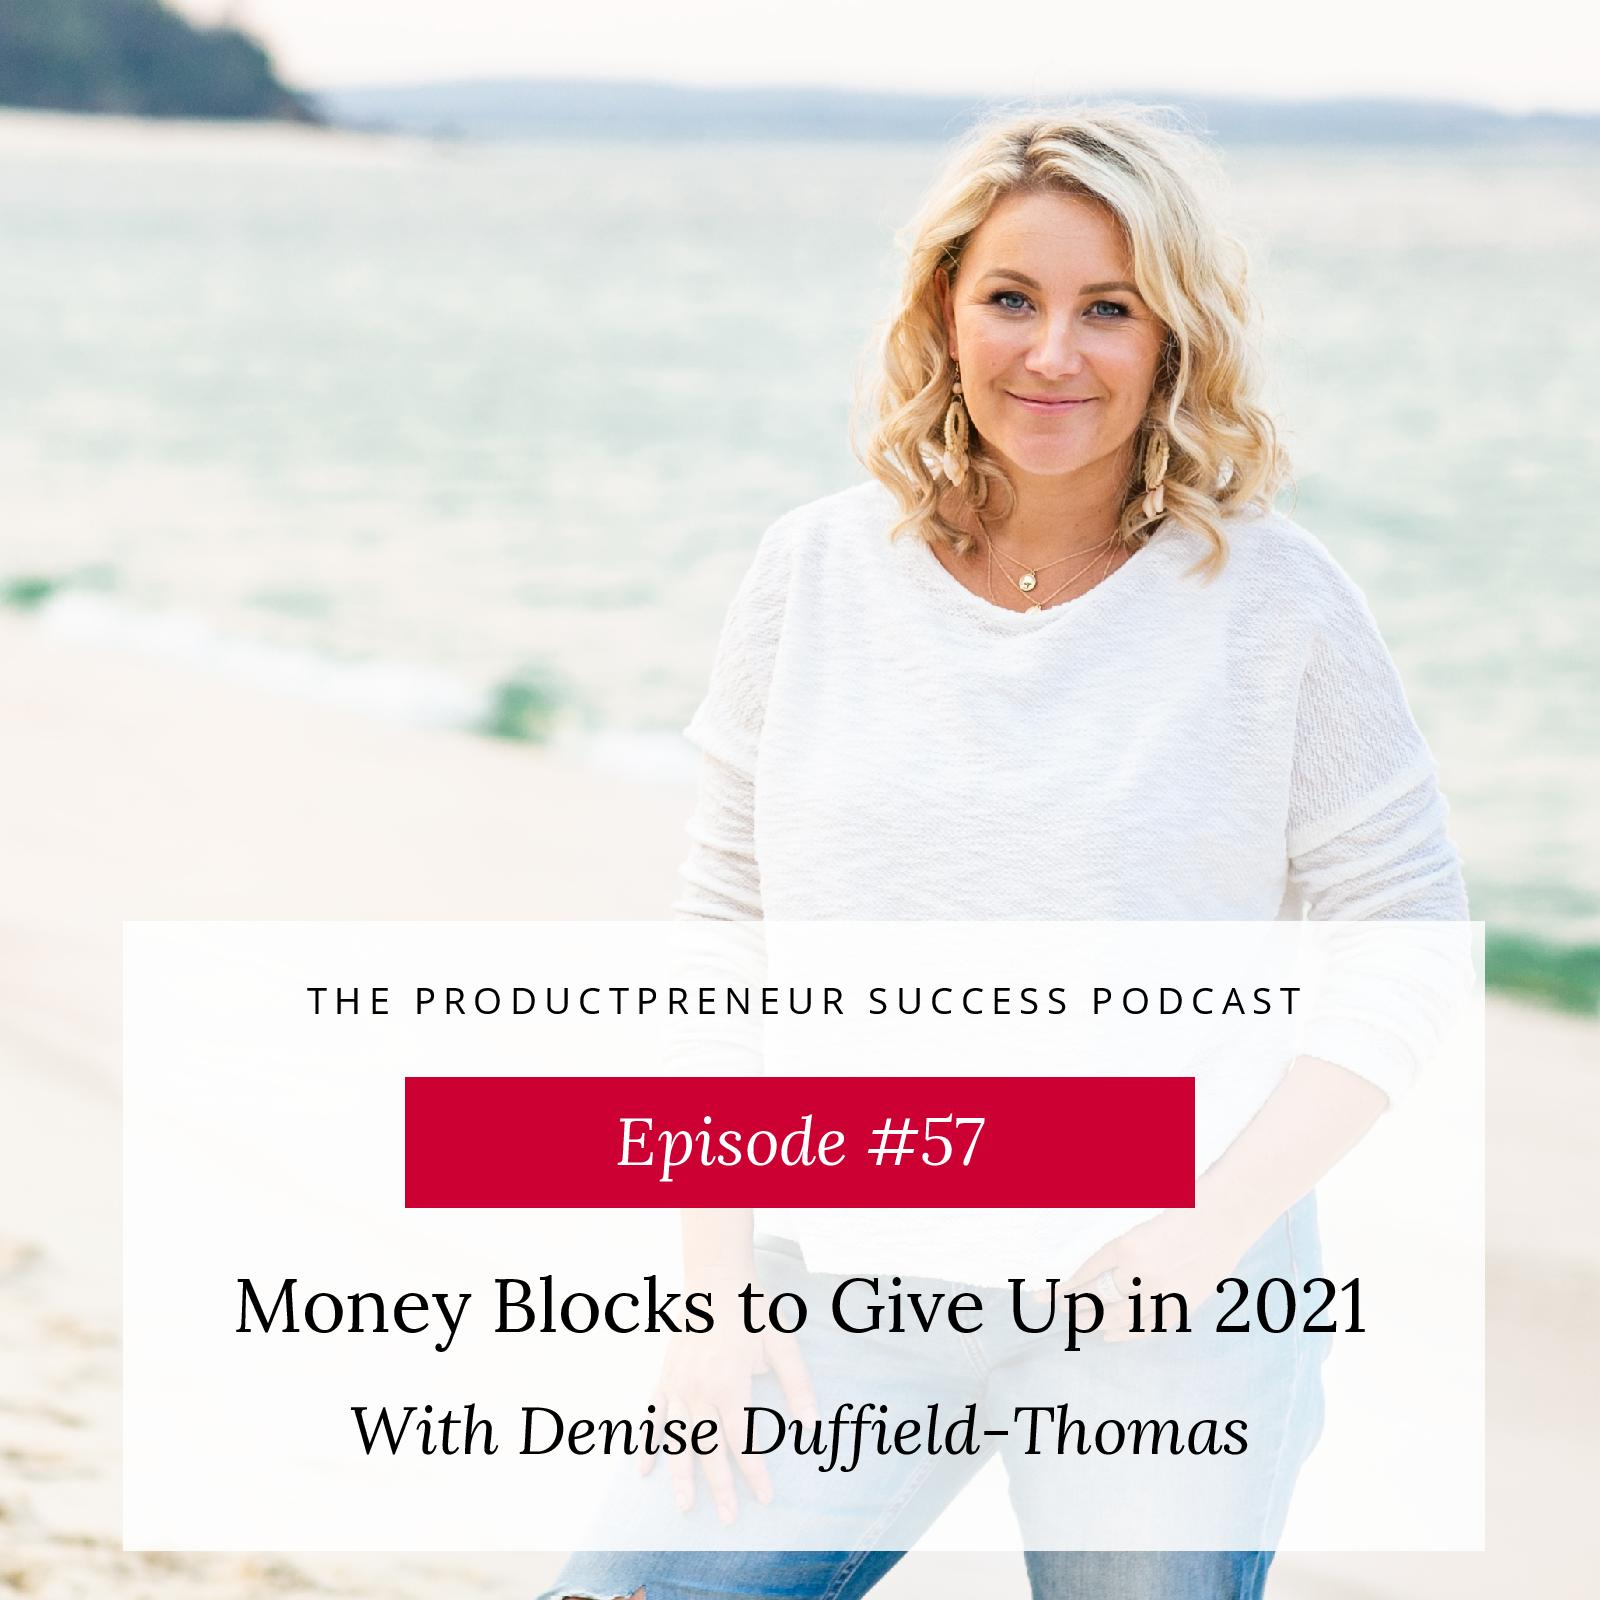 Money Blocks to give up in 2021